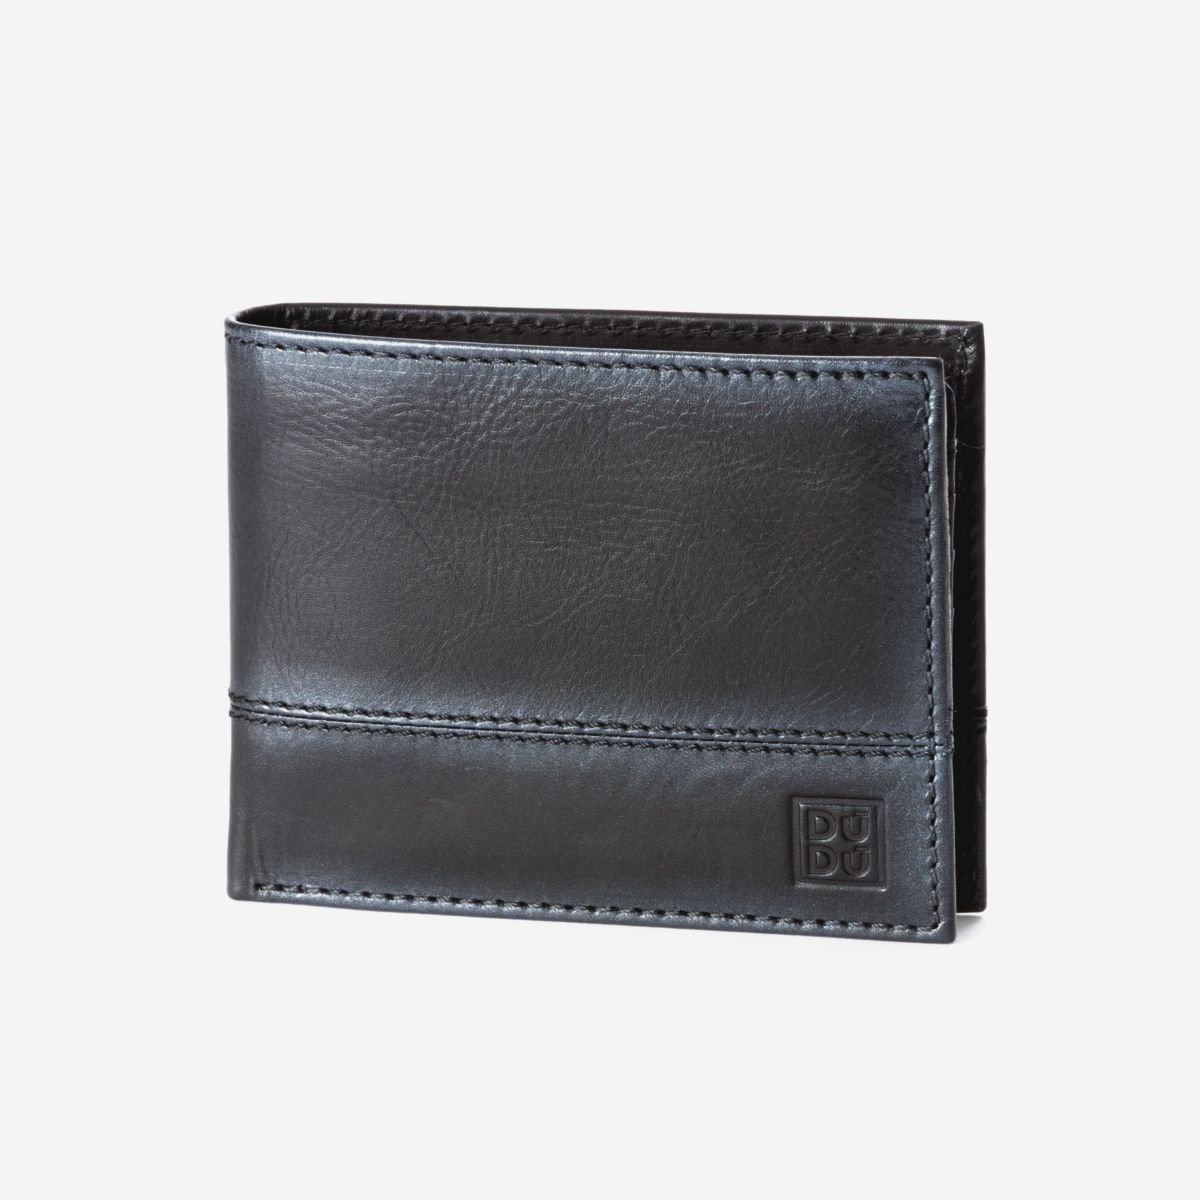 DuDu Leather Wallet With Coin Pocket For Men - Black